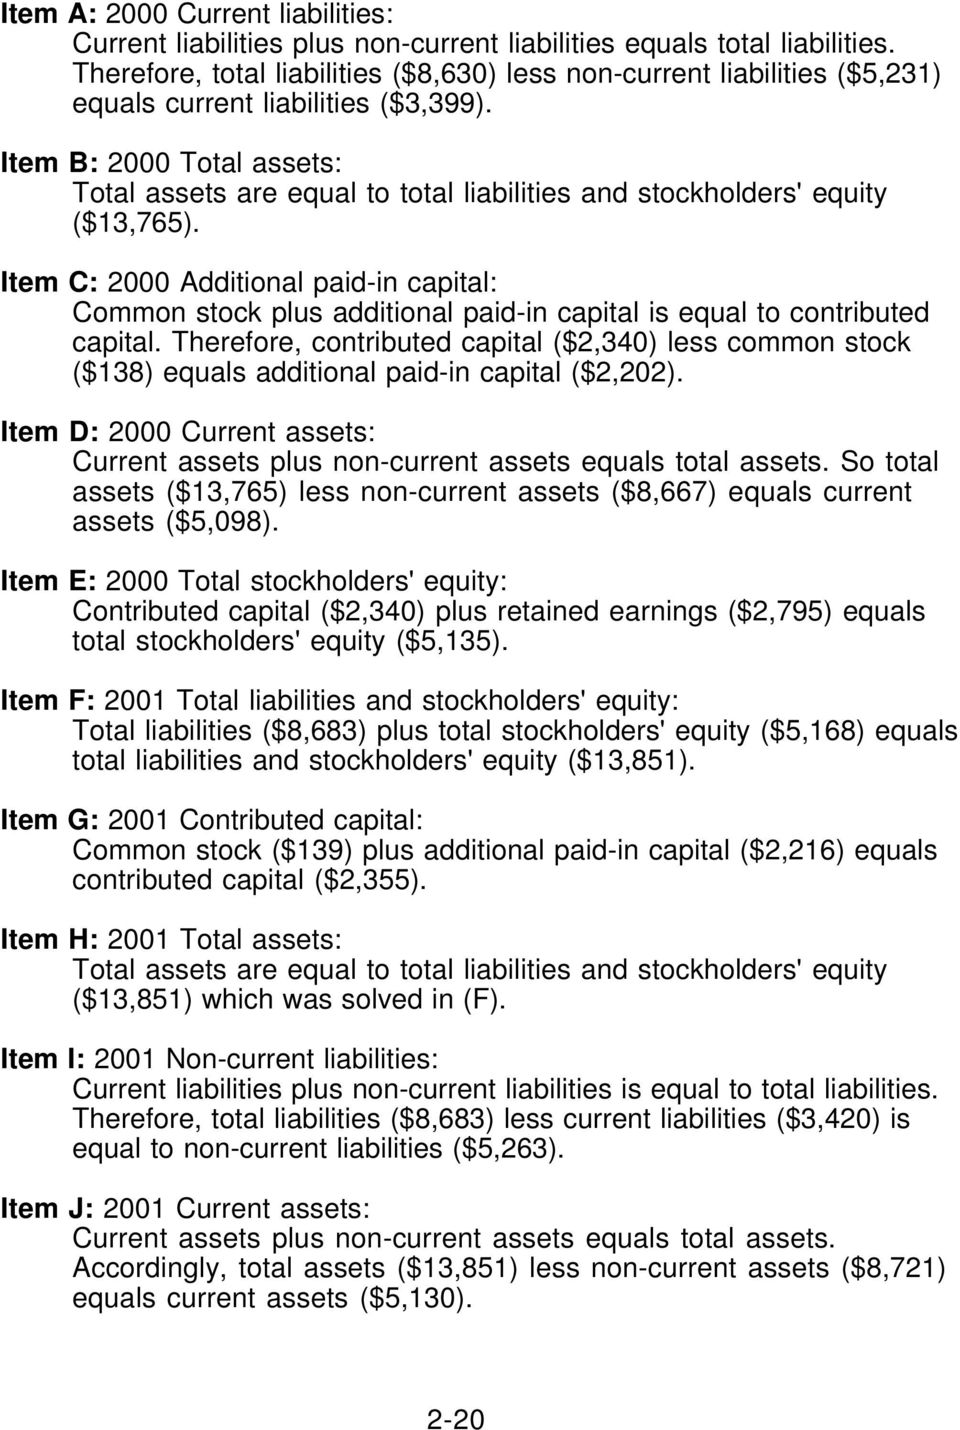 Item B: 2000 Total assets: Total assets are equal to total liabilities and stockholders' equity ($13,765).